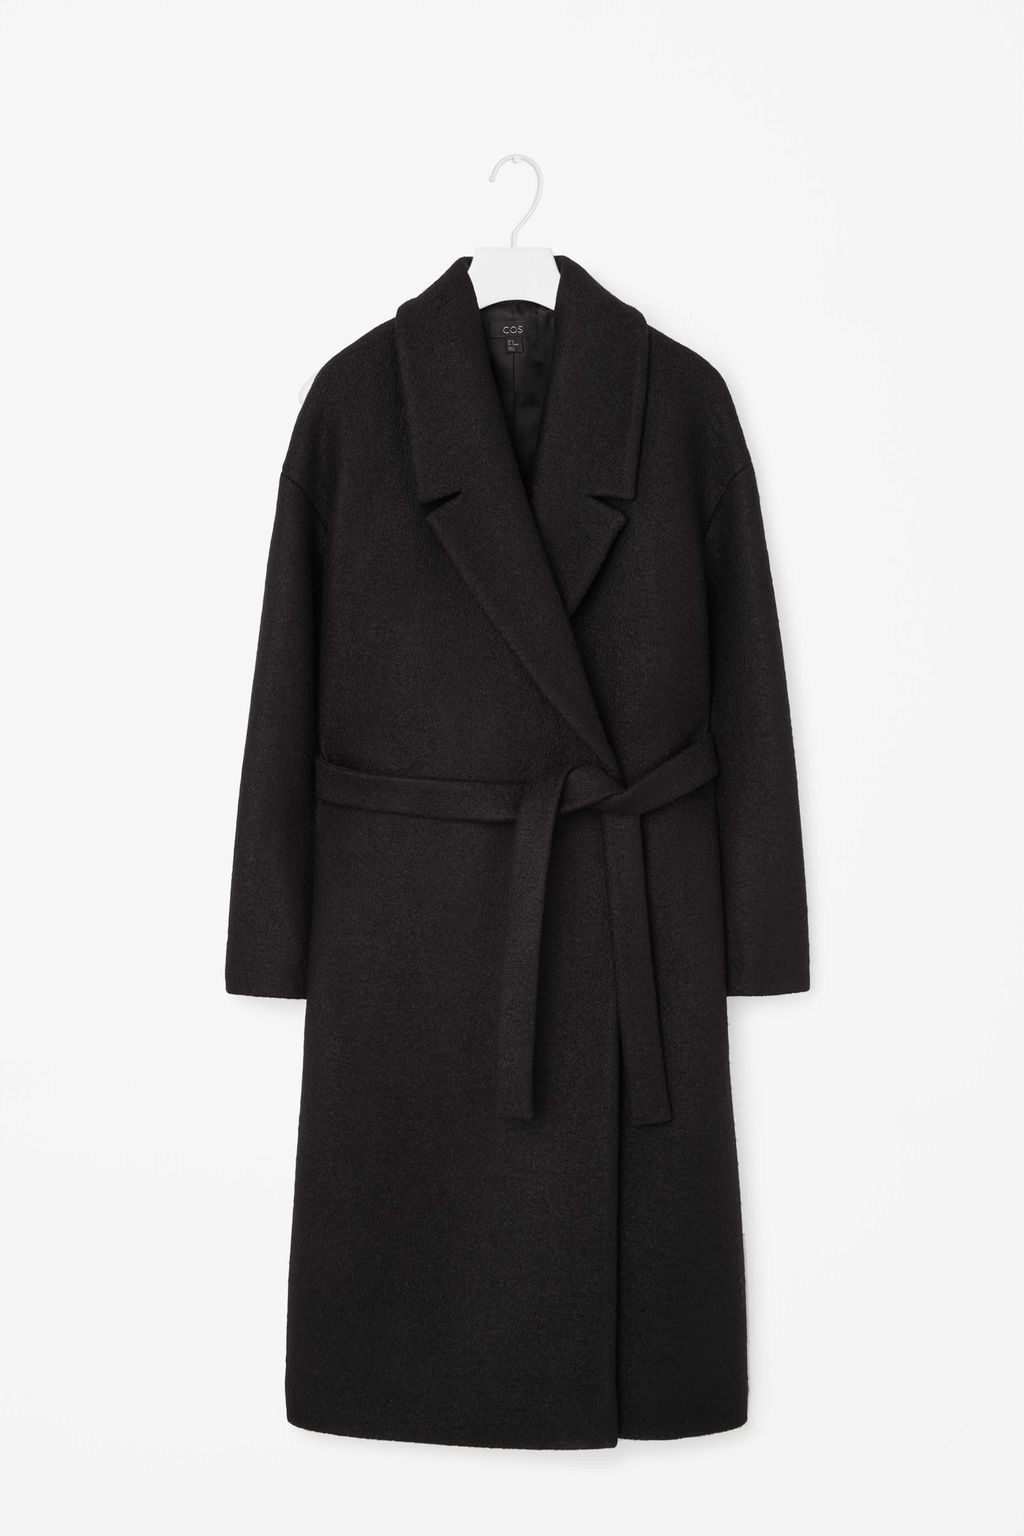 Belted Wool Coat - pattern: plain; style: single breasted; length: on the knee; collar: standard lapel/rever collar; predominant colour: black; occasions: casual, work, creative work; fit: tailored/fitted; fibres: wool - 100%; waist detail: belted waist/tie at waist/drawstring; sleeve length: long sleeve; sleeve style: standard; collar break: medium; pattern type: fabric; texture group: woven bulky/heavy; season: a/w 2015; wardrobe: basic